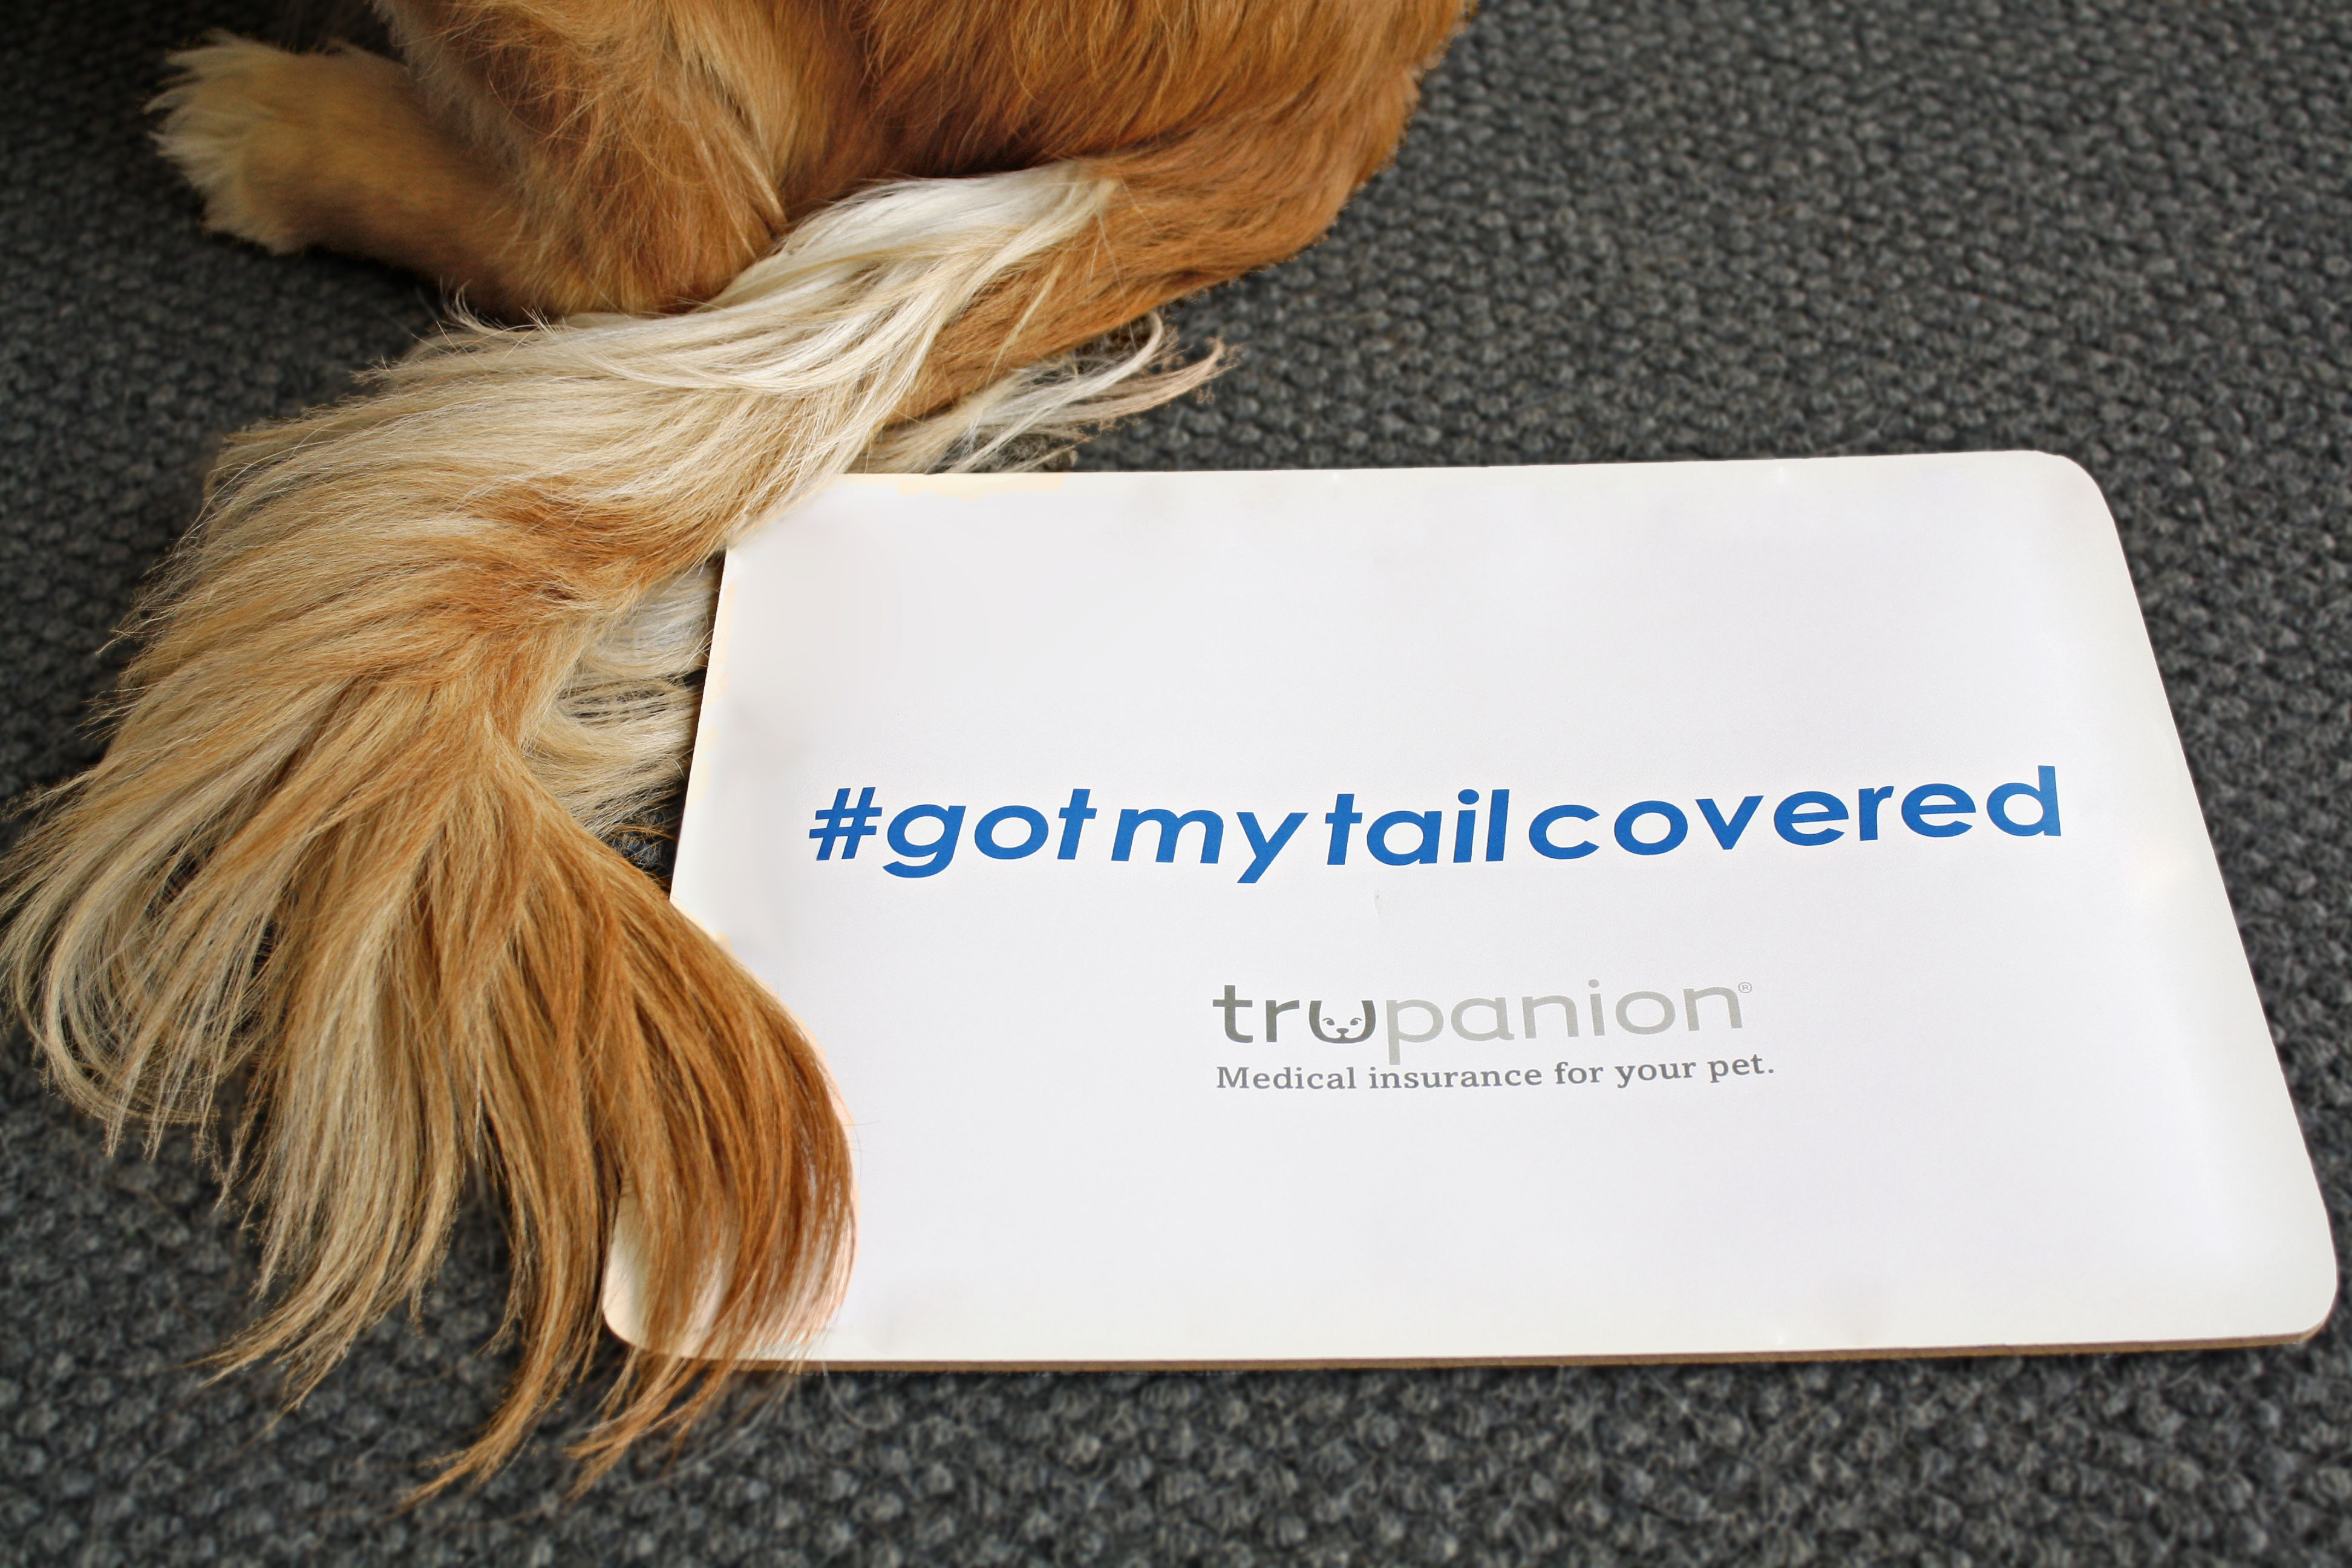 Baileys got her tail covered by trupanion trupanion